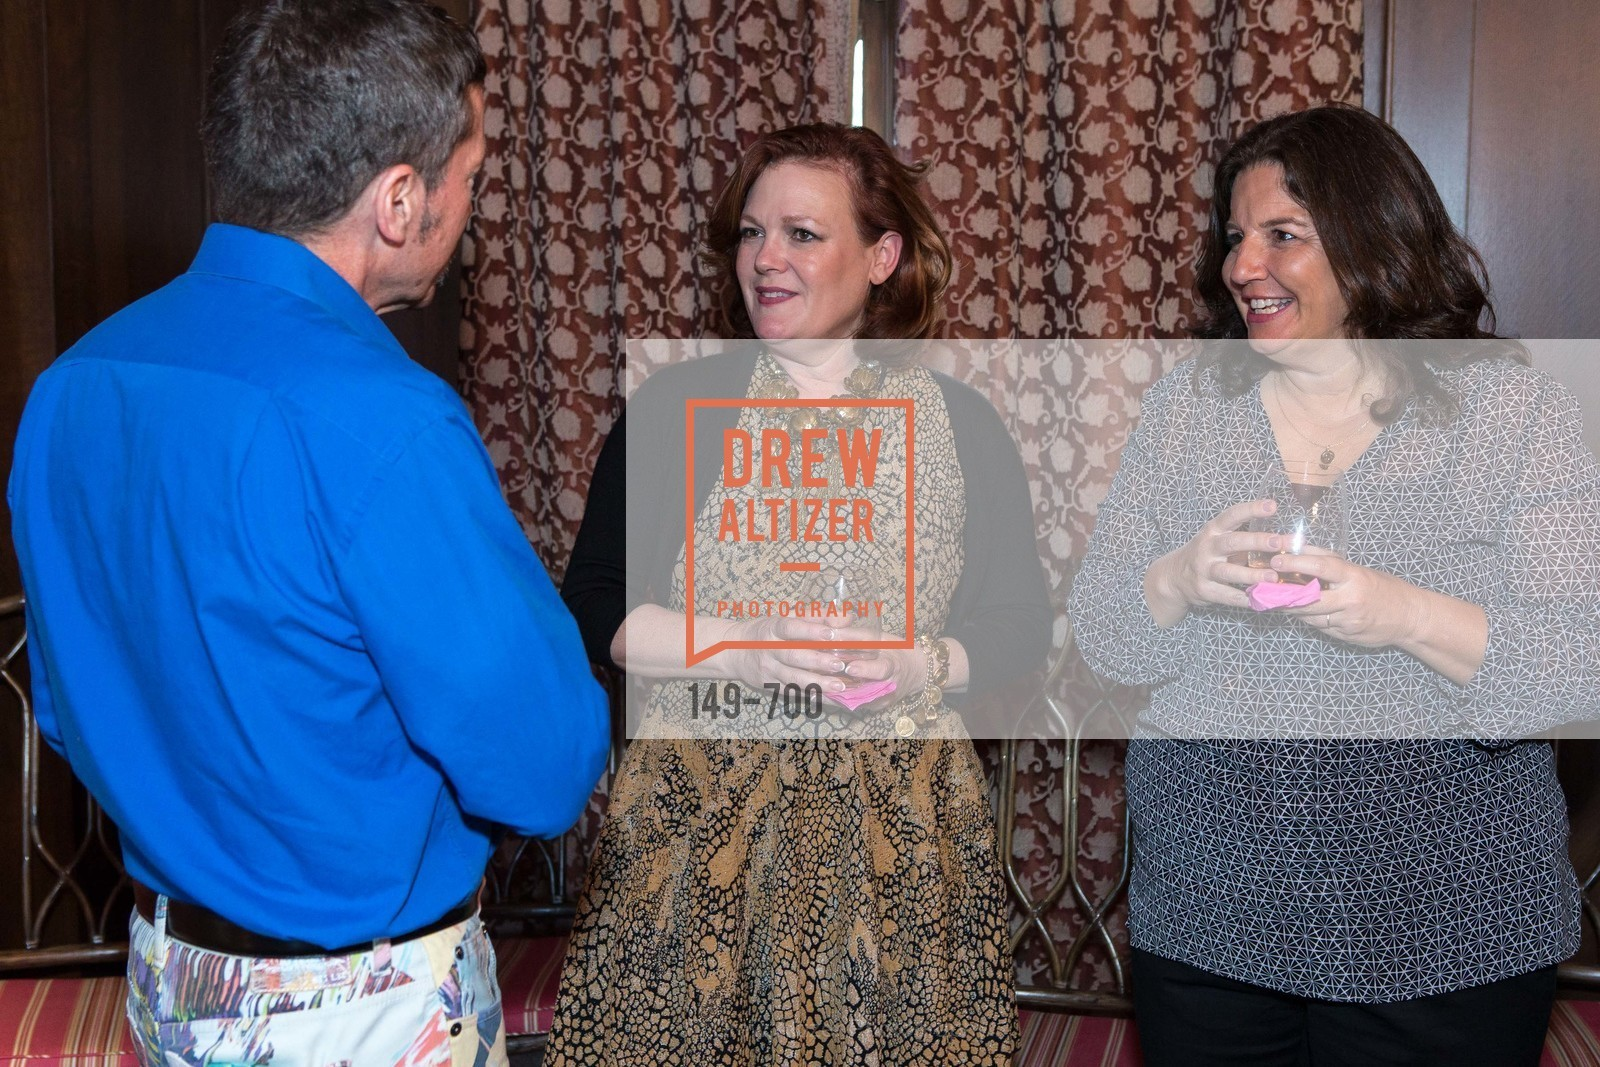 Jennifer Raiser, Bridget Stangland, SUKEY FORBES' Book Signing, US, May 6th, 2015,Drew Altizer, Drew Altizer Photography, full-service agency, private events, San Francisco photographer, photographer california